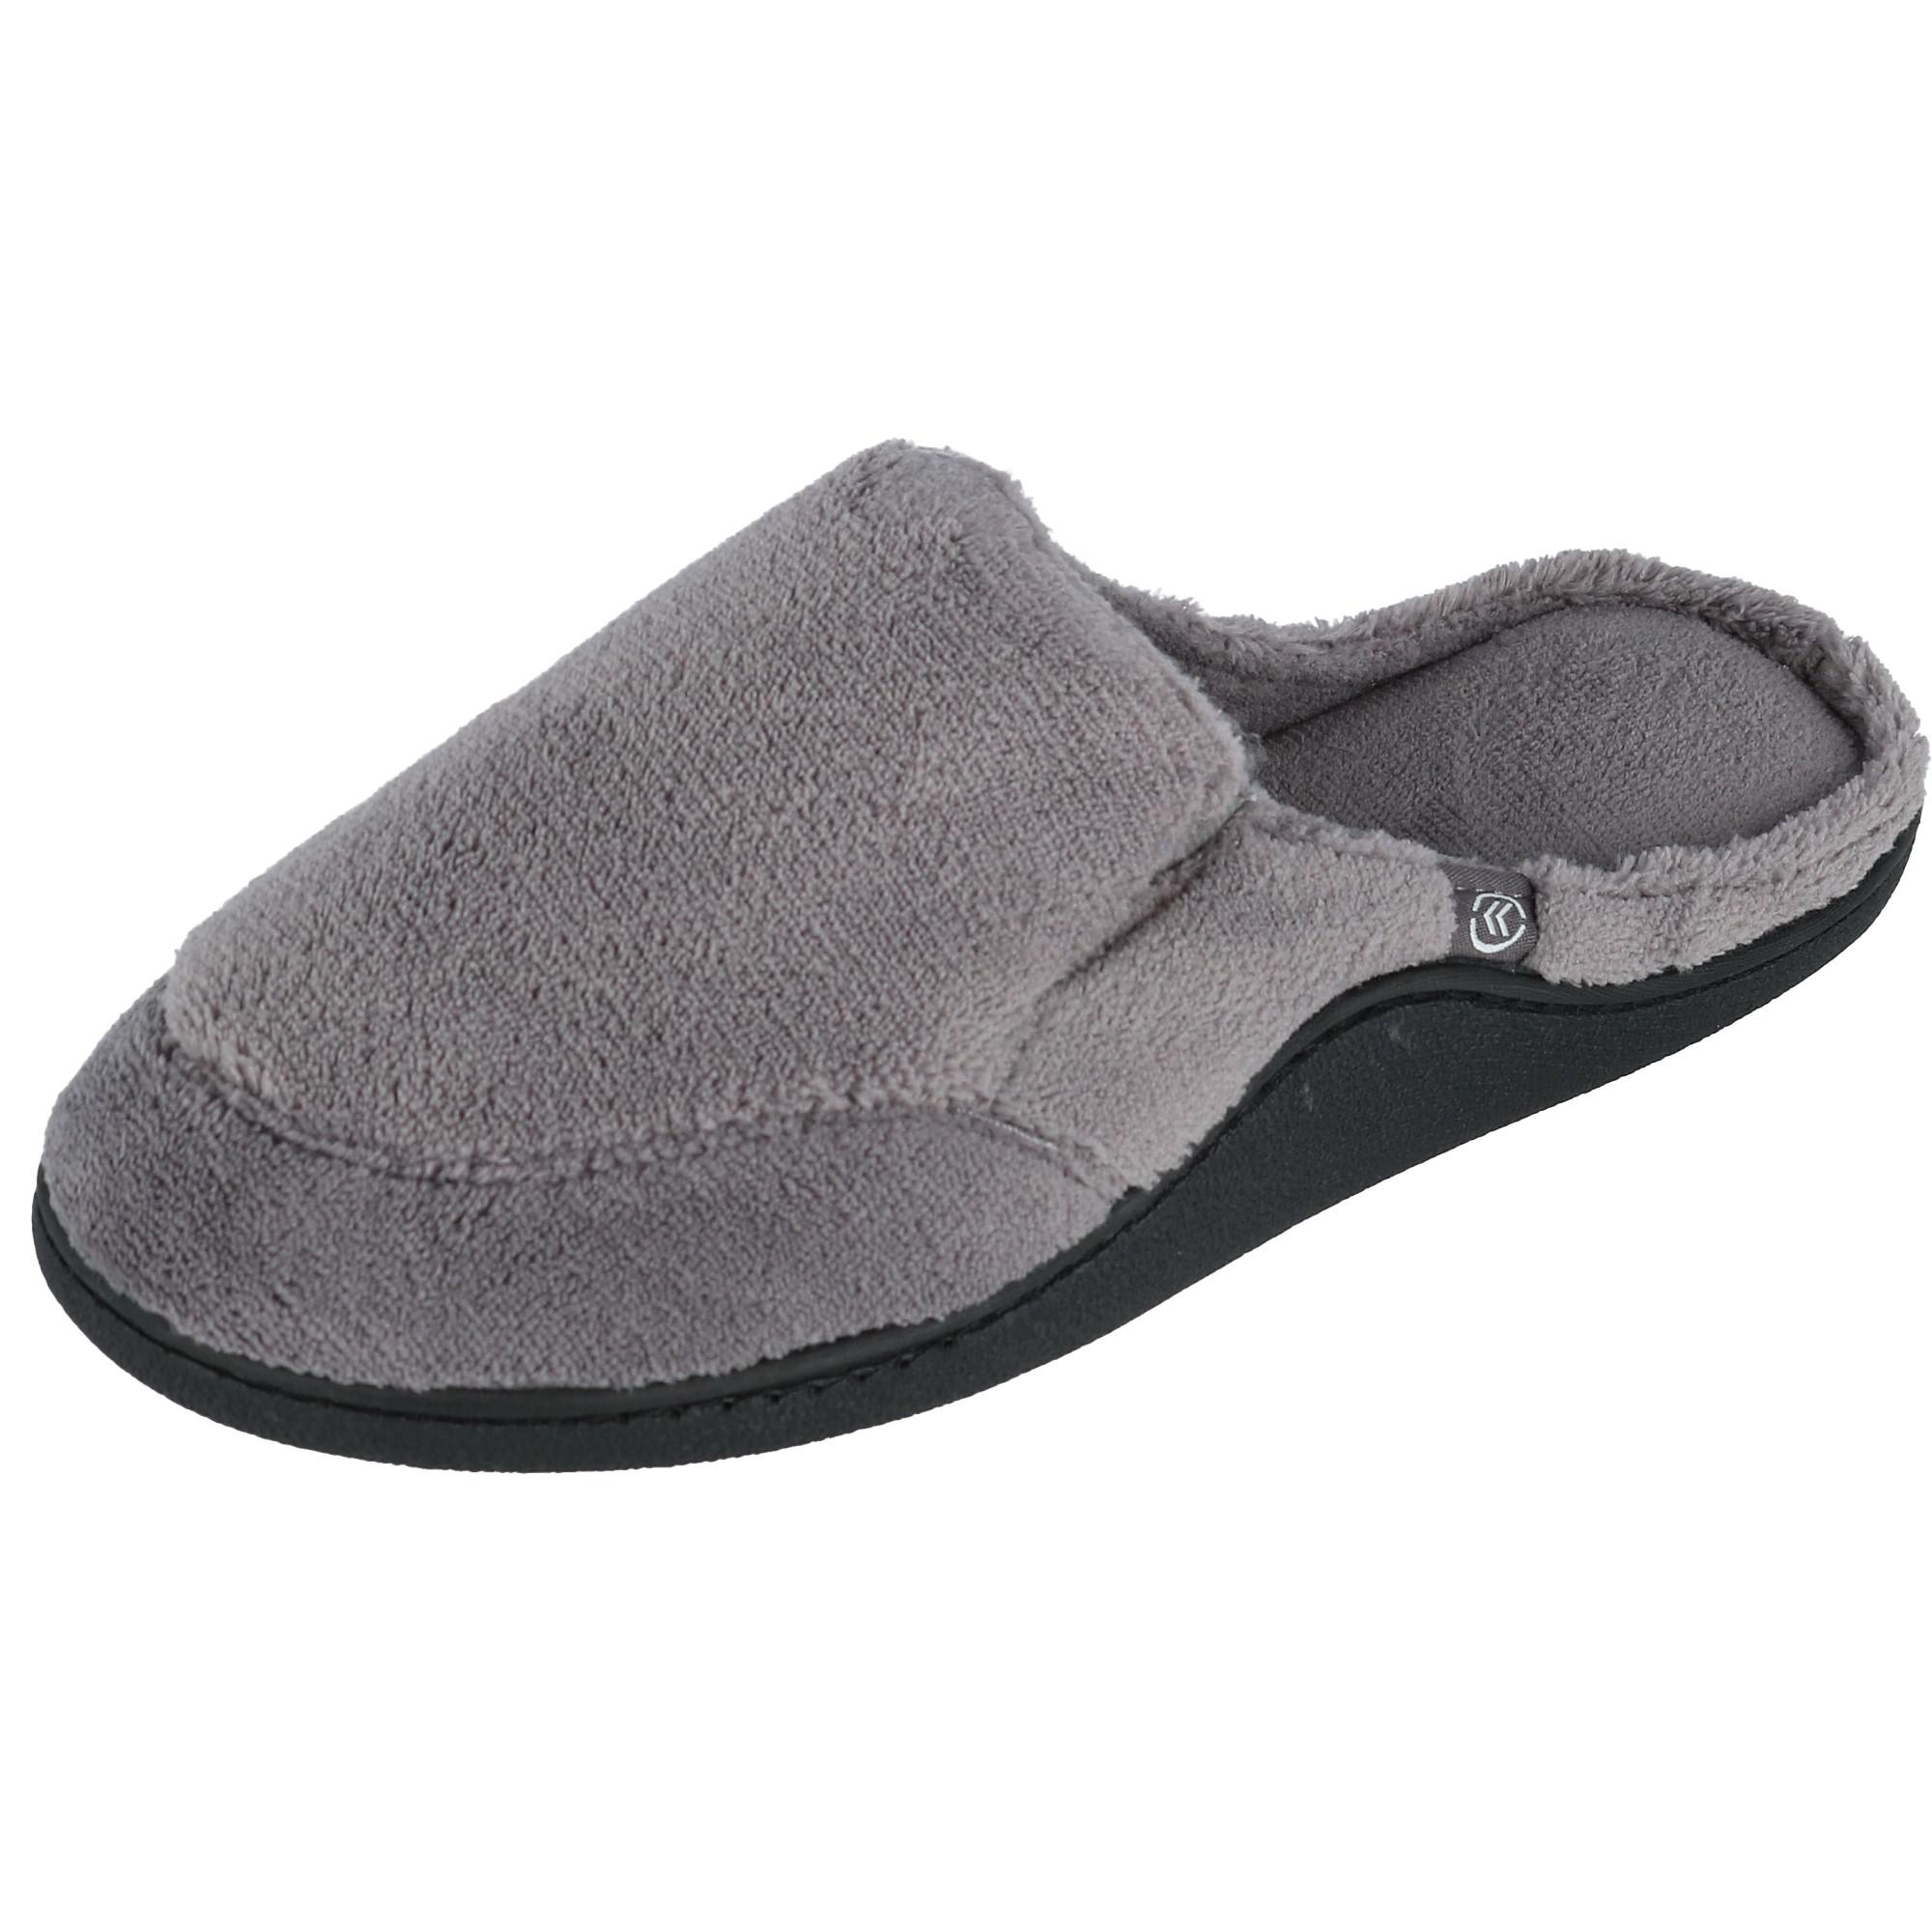 Isotoner Mens Microterry Open Back Clog Slippers